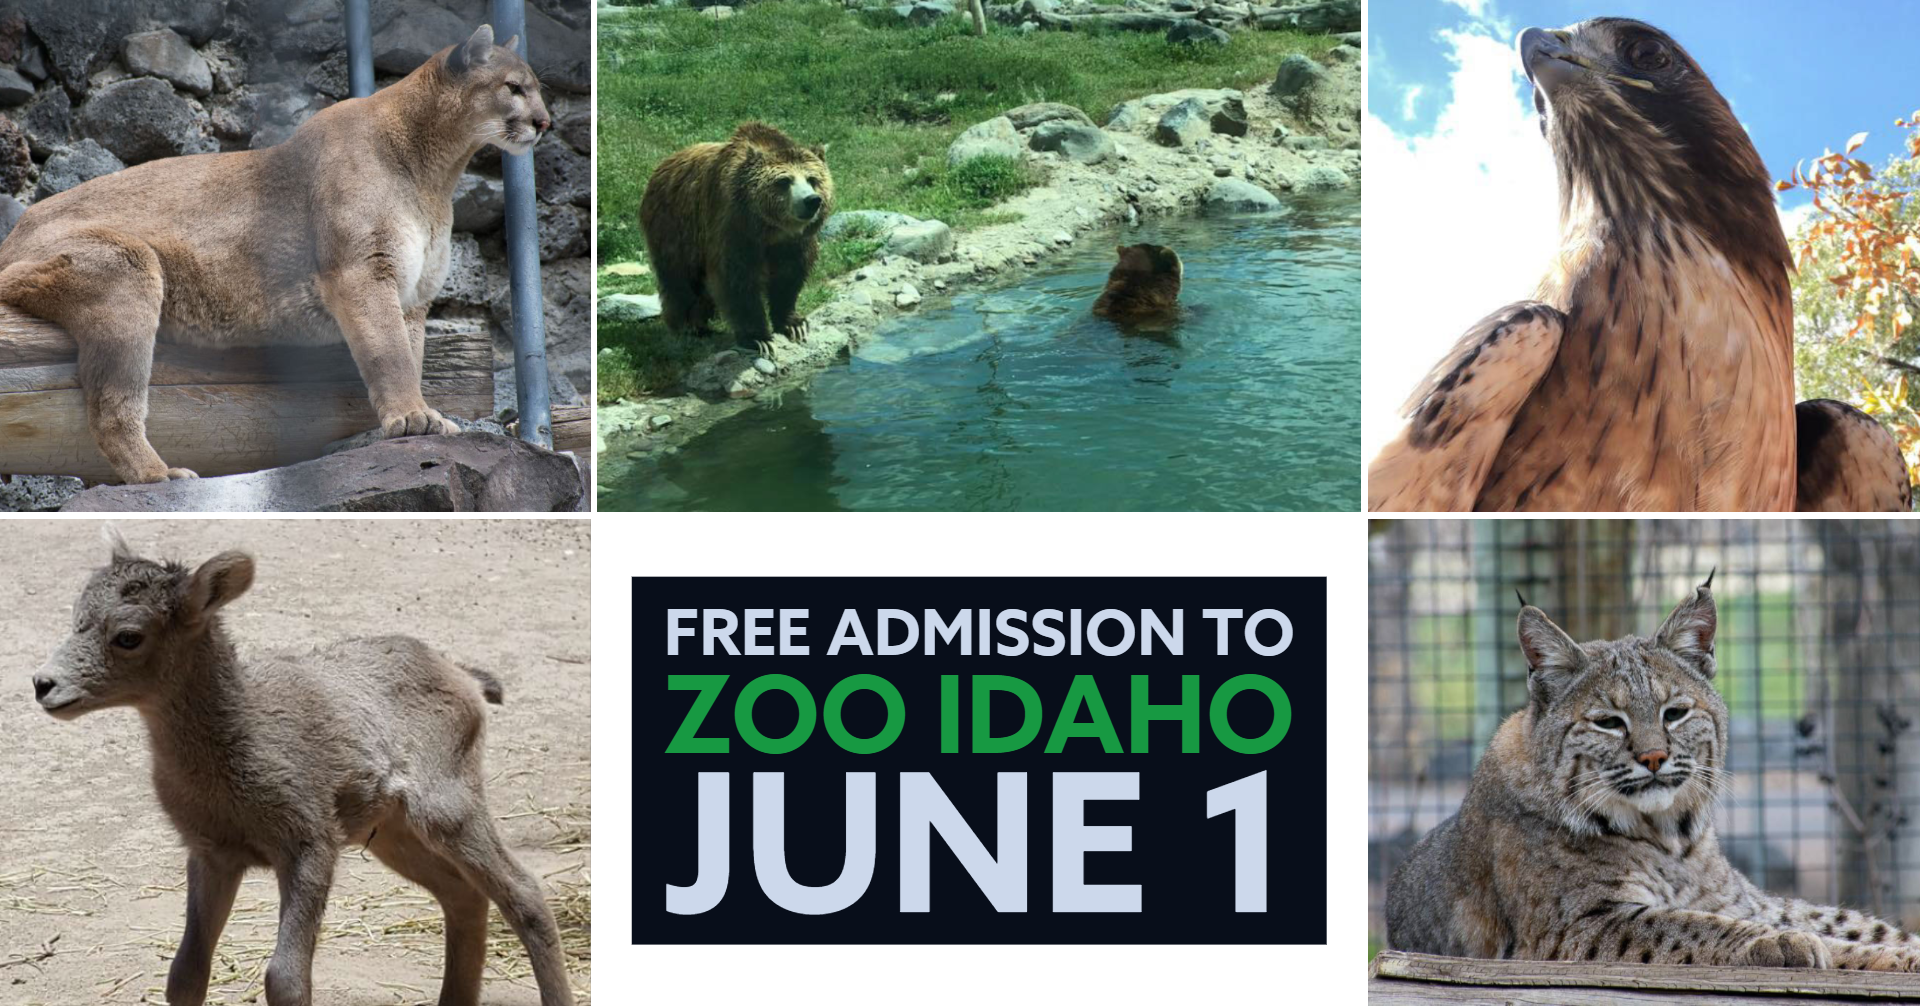 The animals at Zoo Idaho.